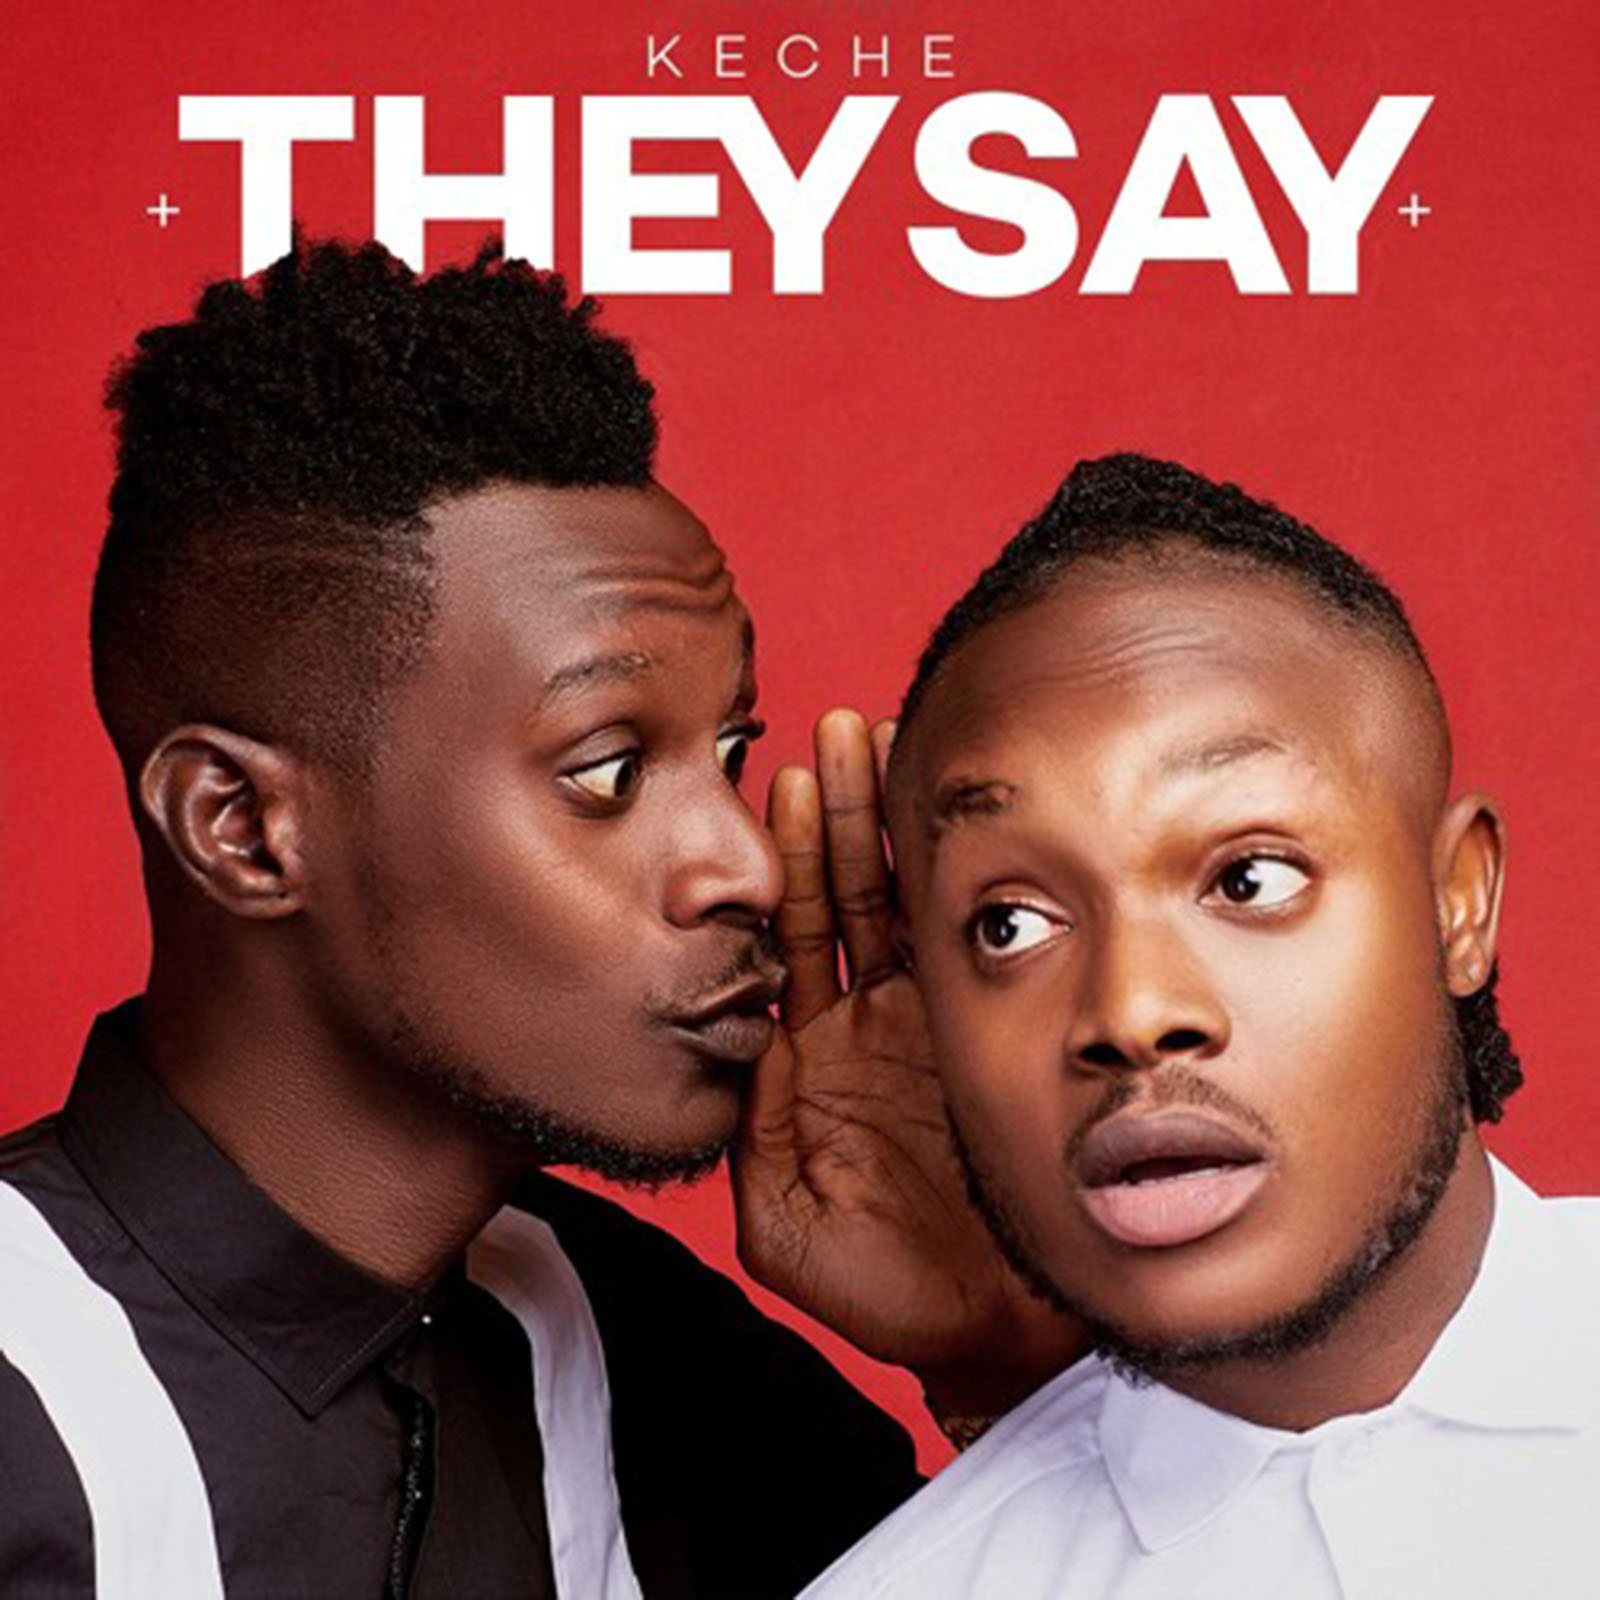 They Say by Keche